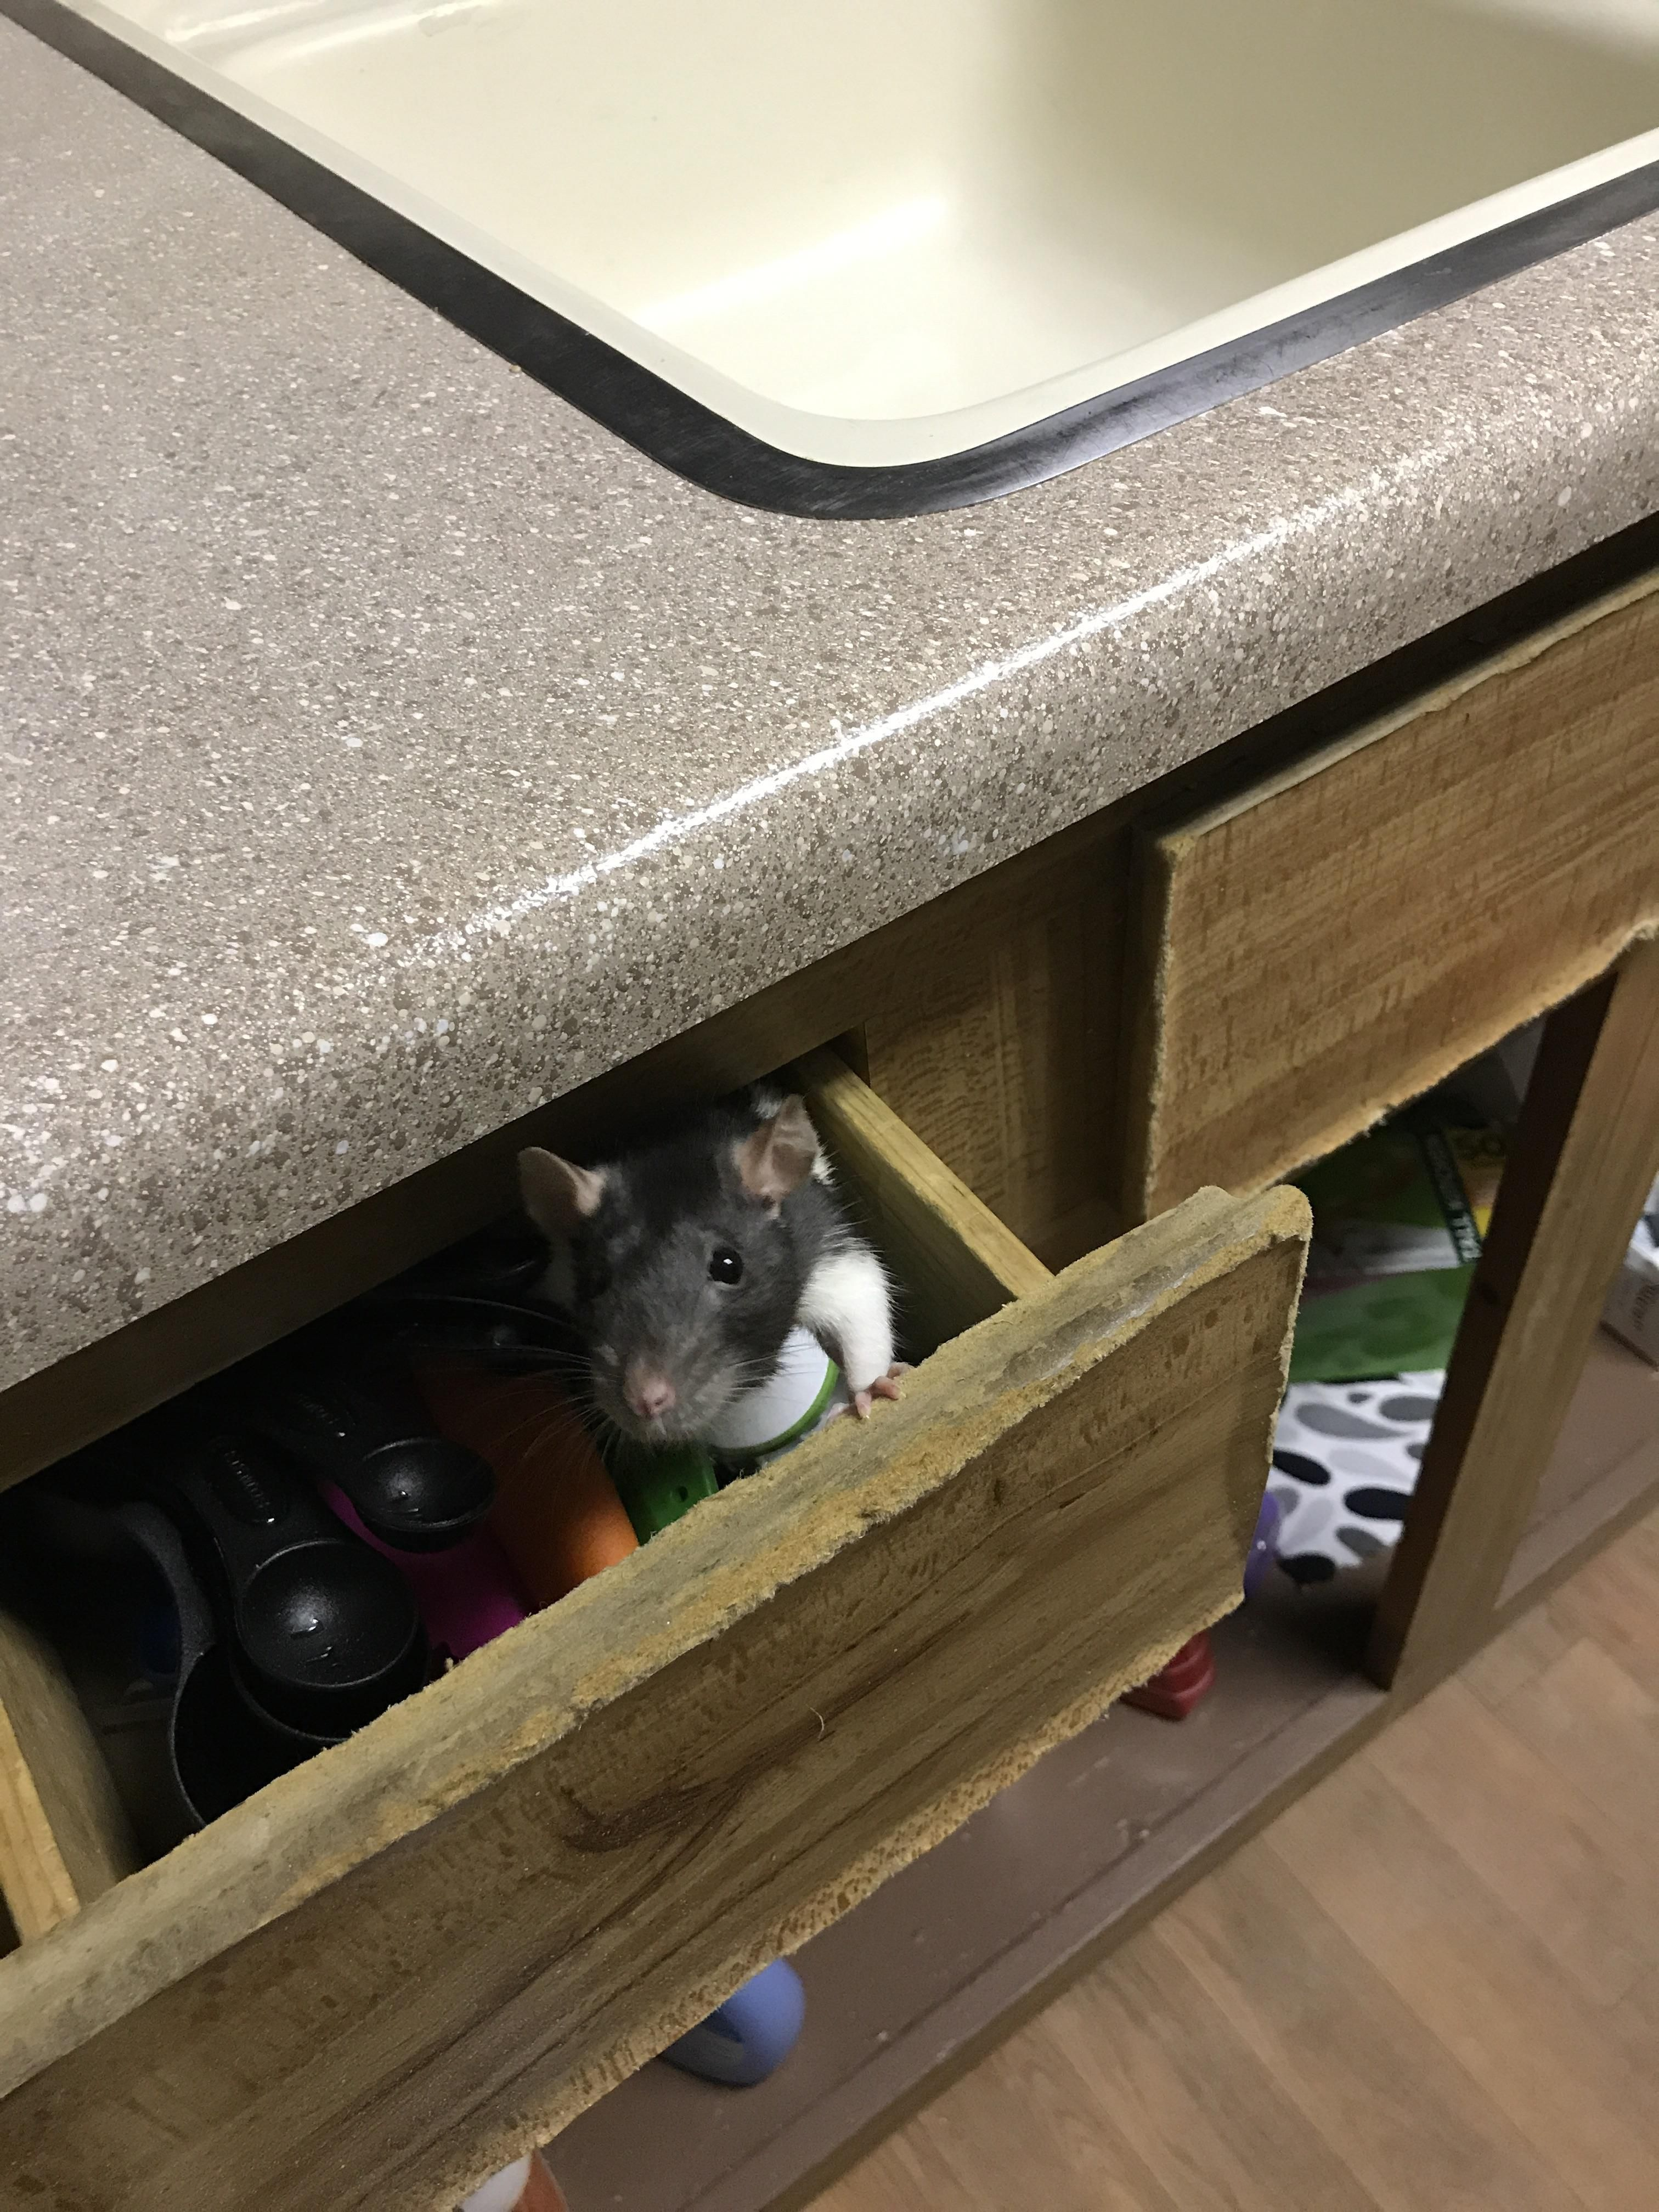 She likes to climb into the drawers in the kitchen #aww #cute #rat #cuterats #ratsofpinterest #cuddle #fluffy #animals #pets #bestfriend #ittssofluffy #boopthesnoot